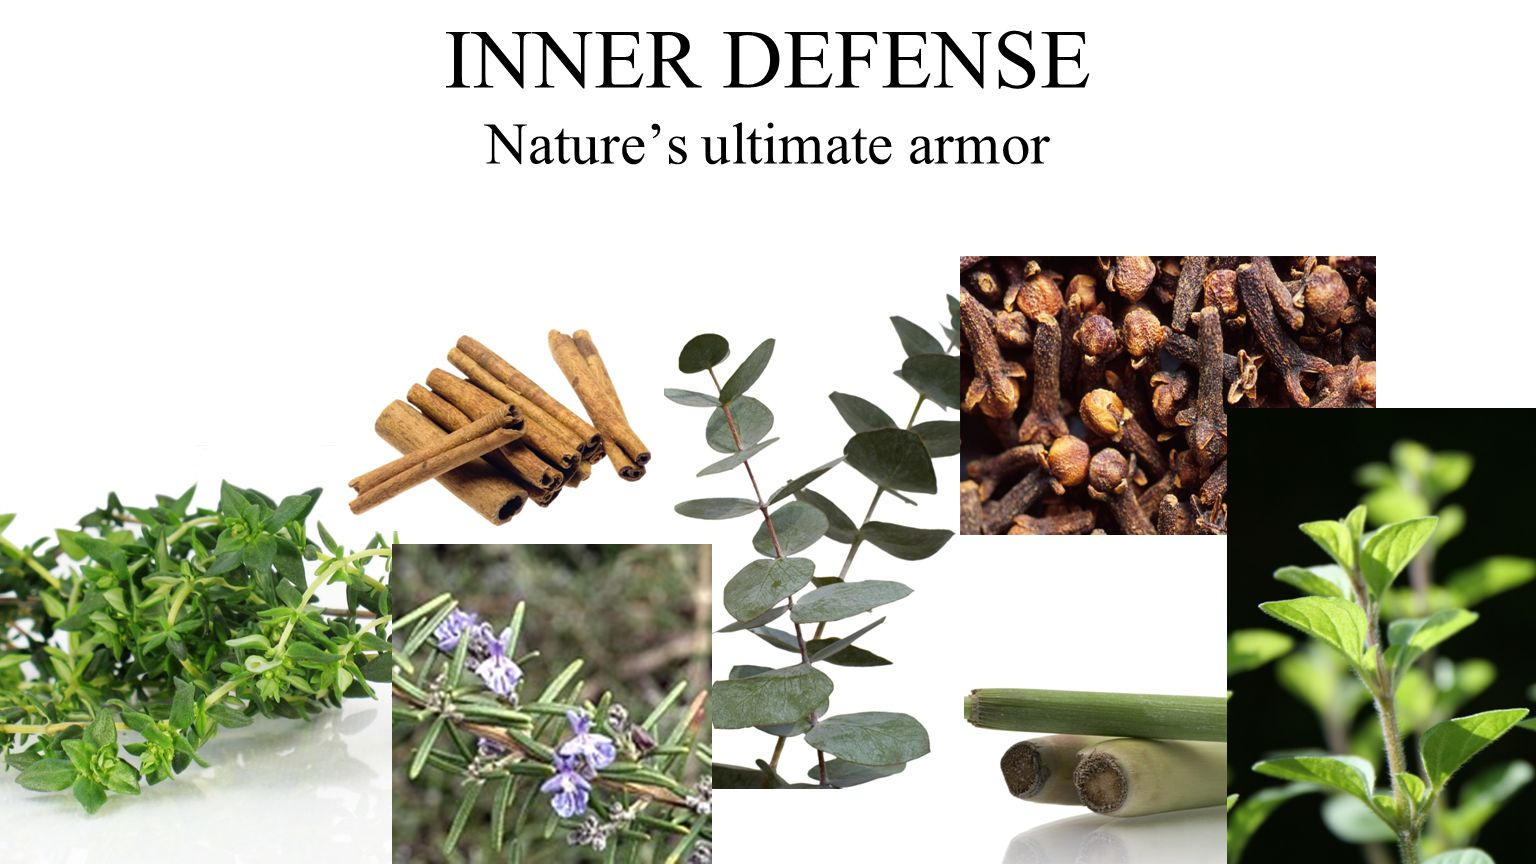 INNER DEFENSE Natures ultimate armor